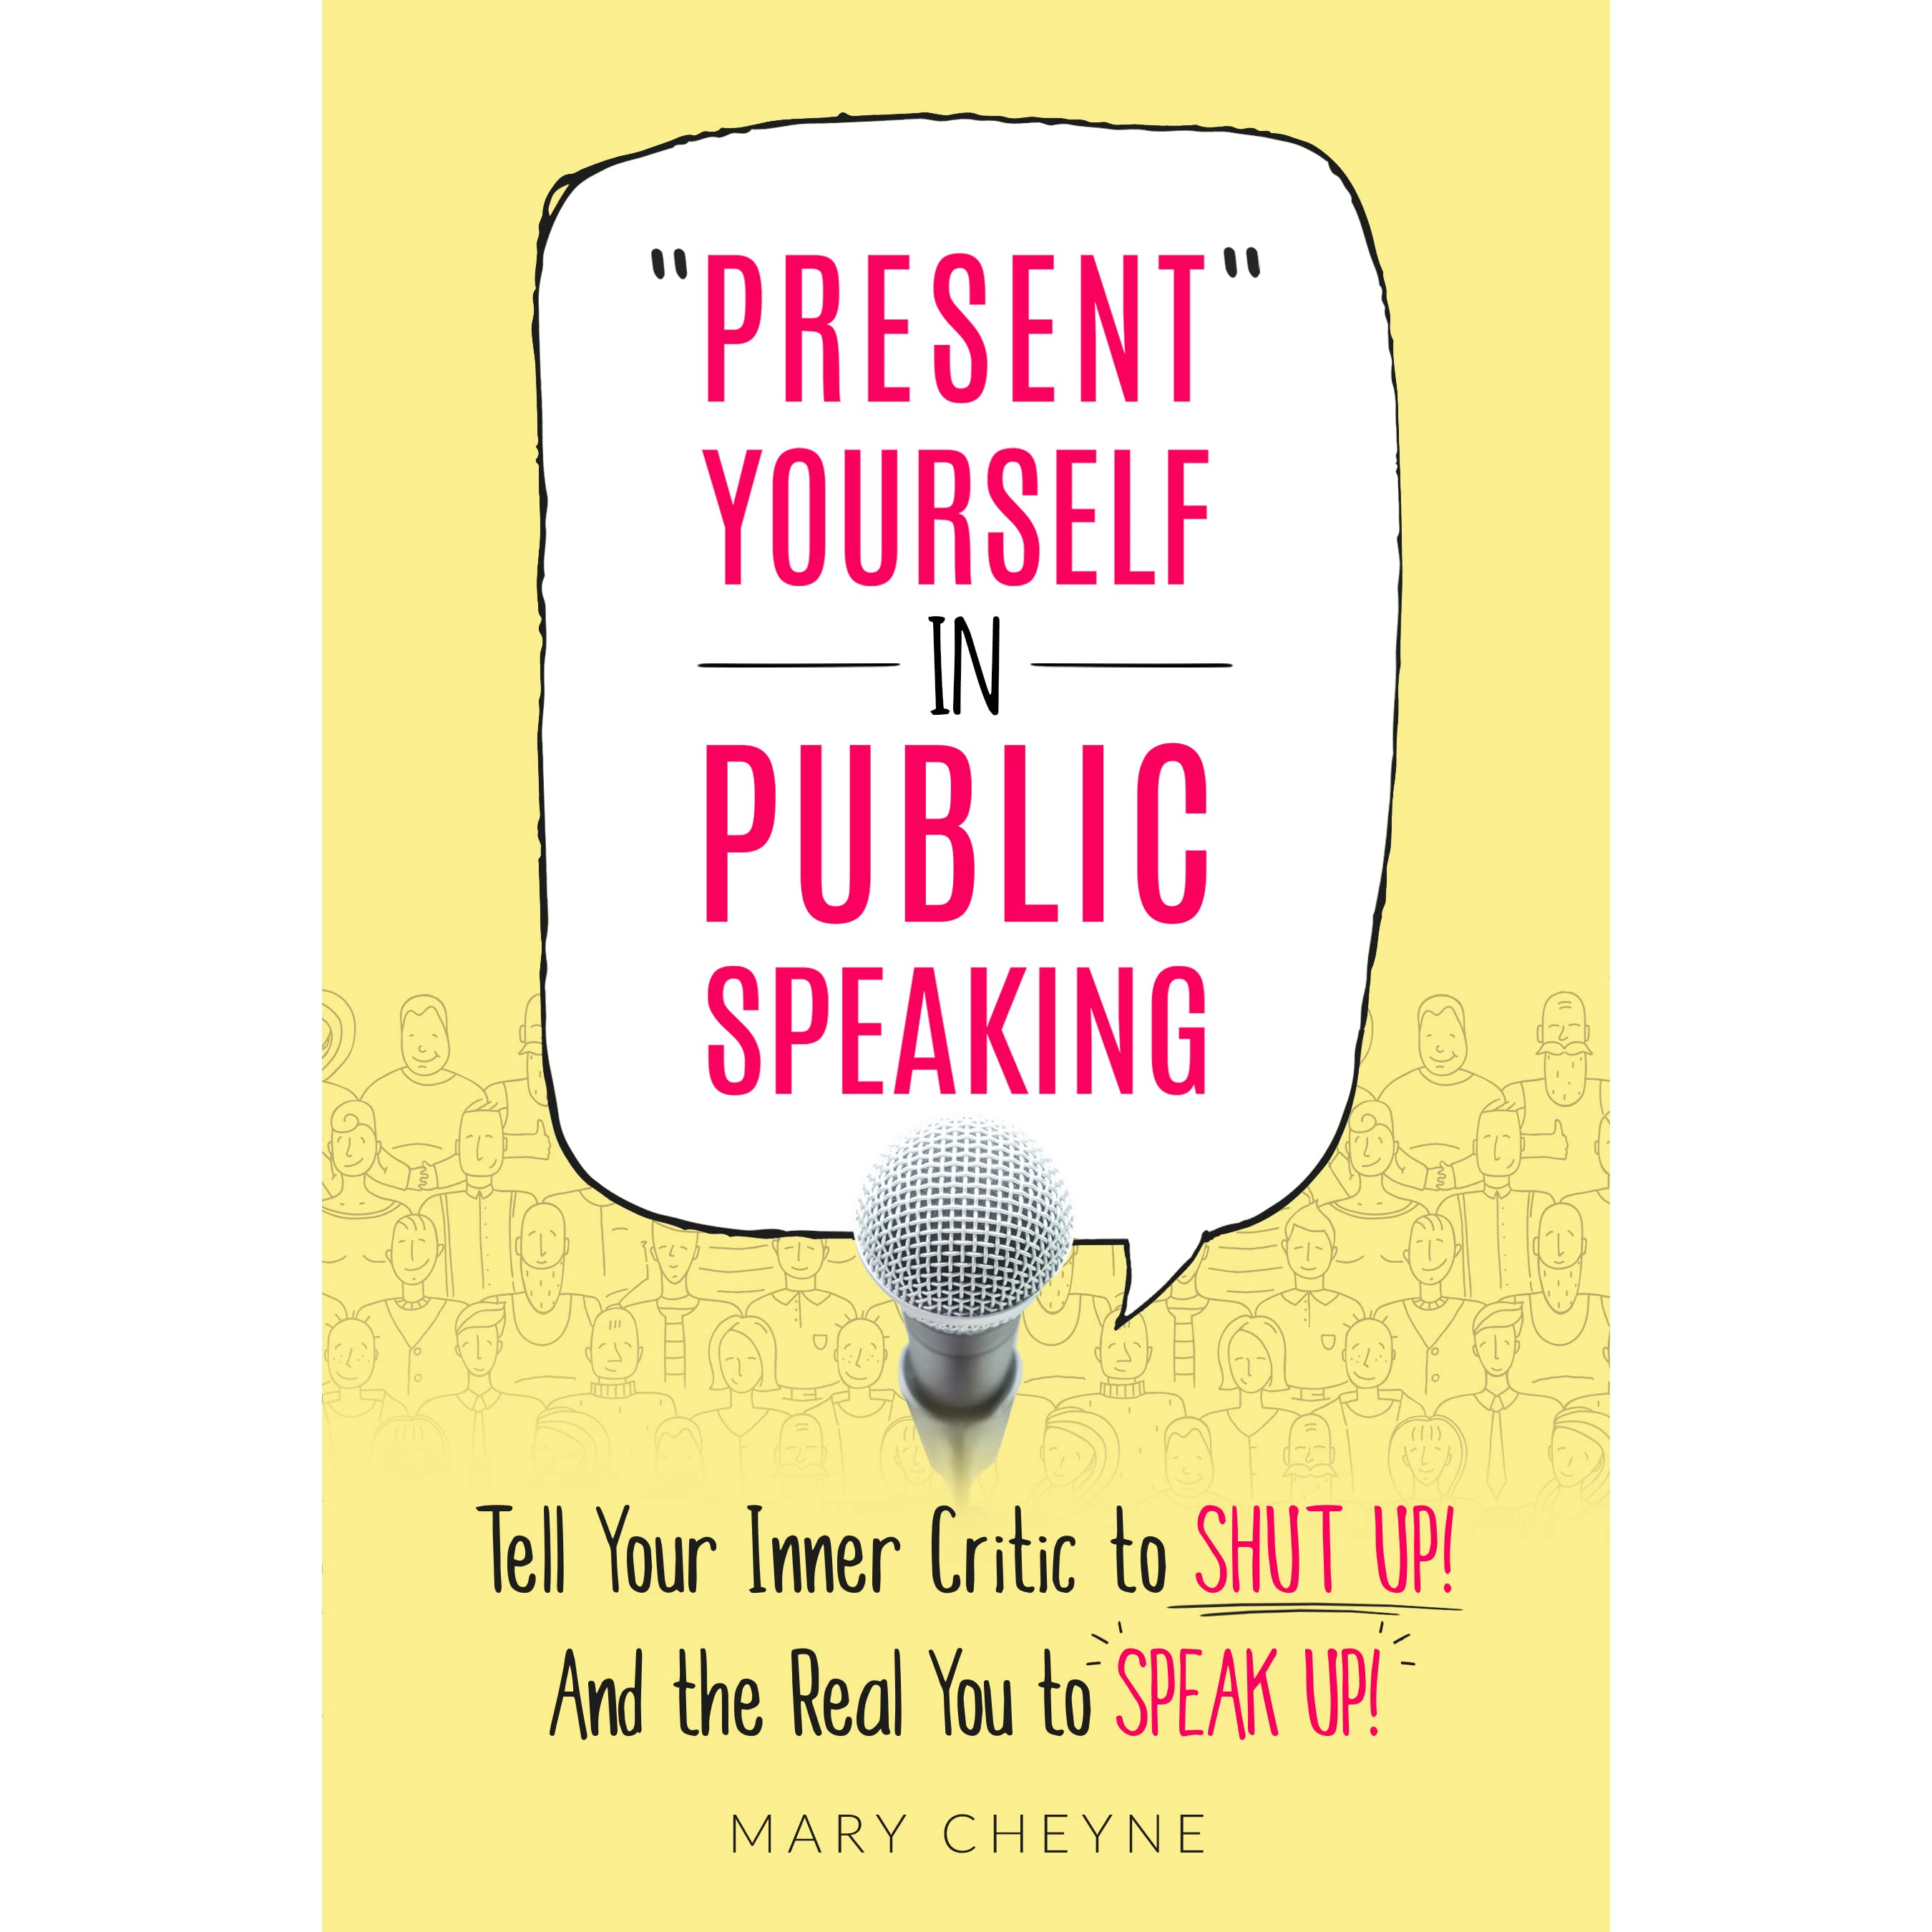 Image result for Public Speaking Books: Present Yourself In Public Speaking